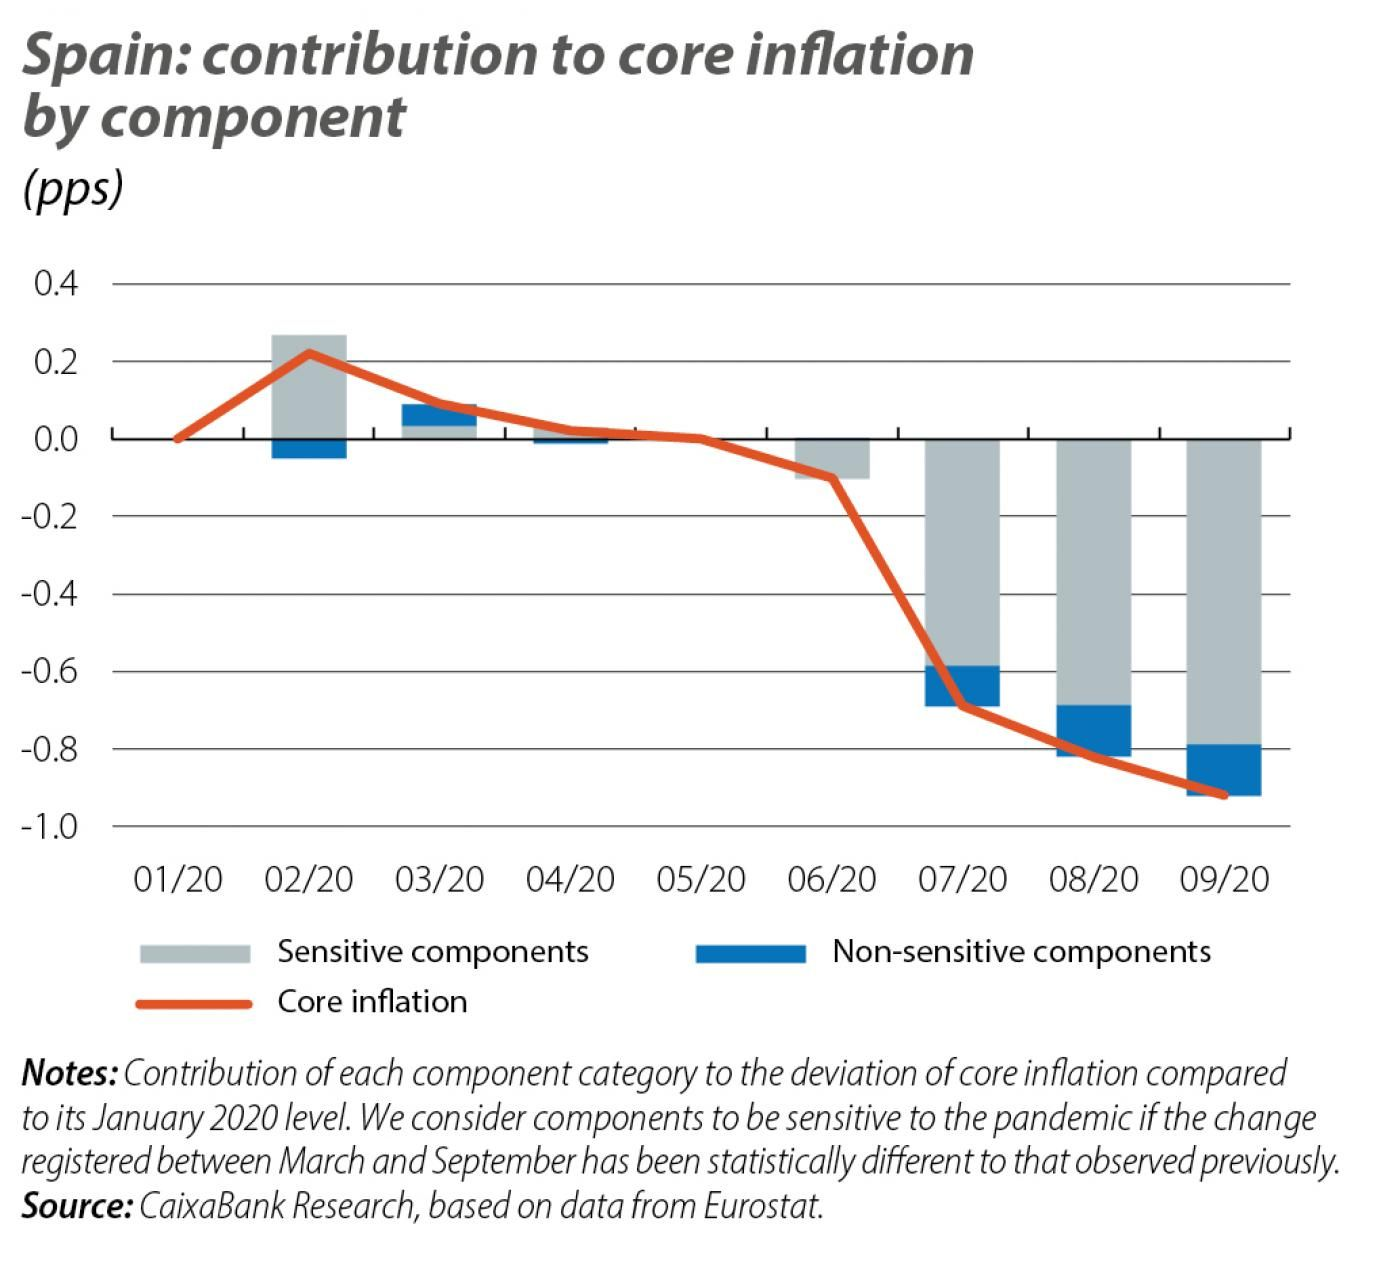 Spain: contribution to core inflation by component